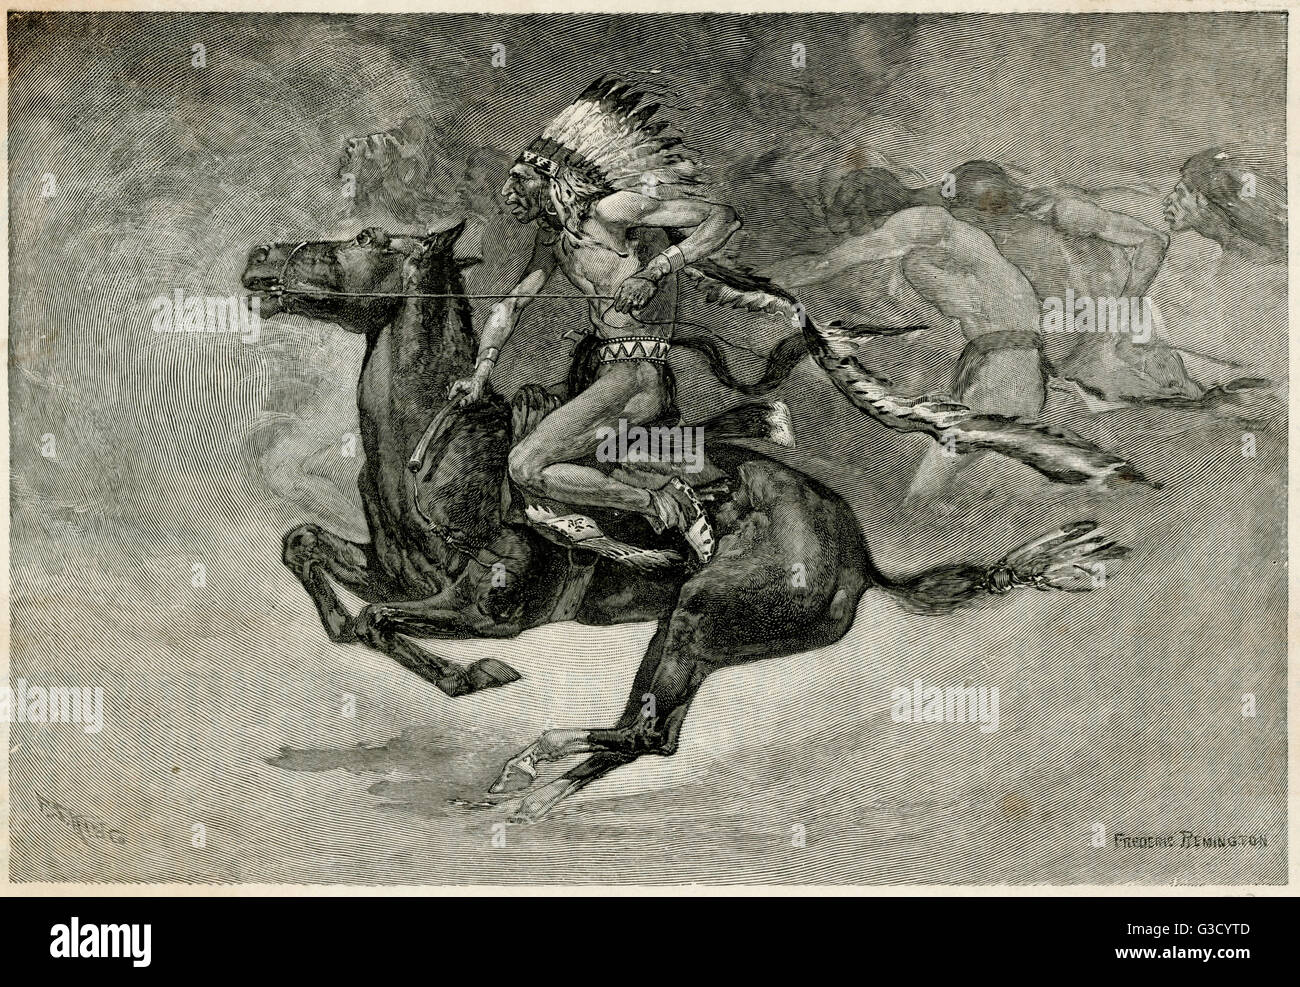 Native American Horse High Resolution Stock Photography And Images Alamy